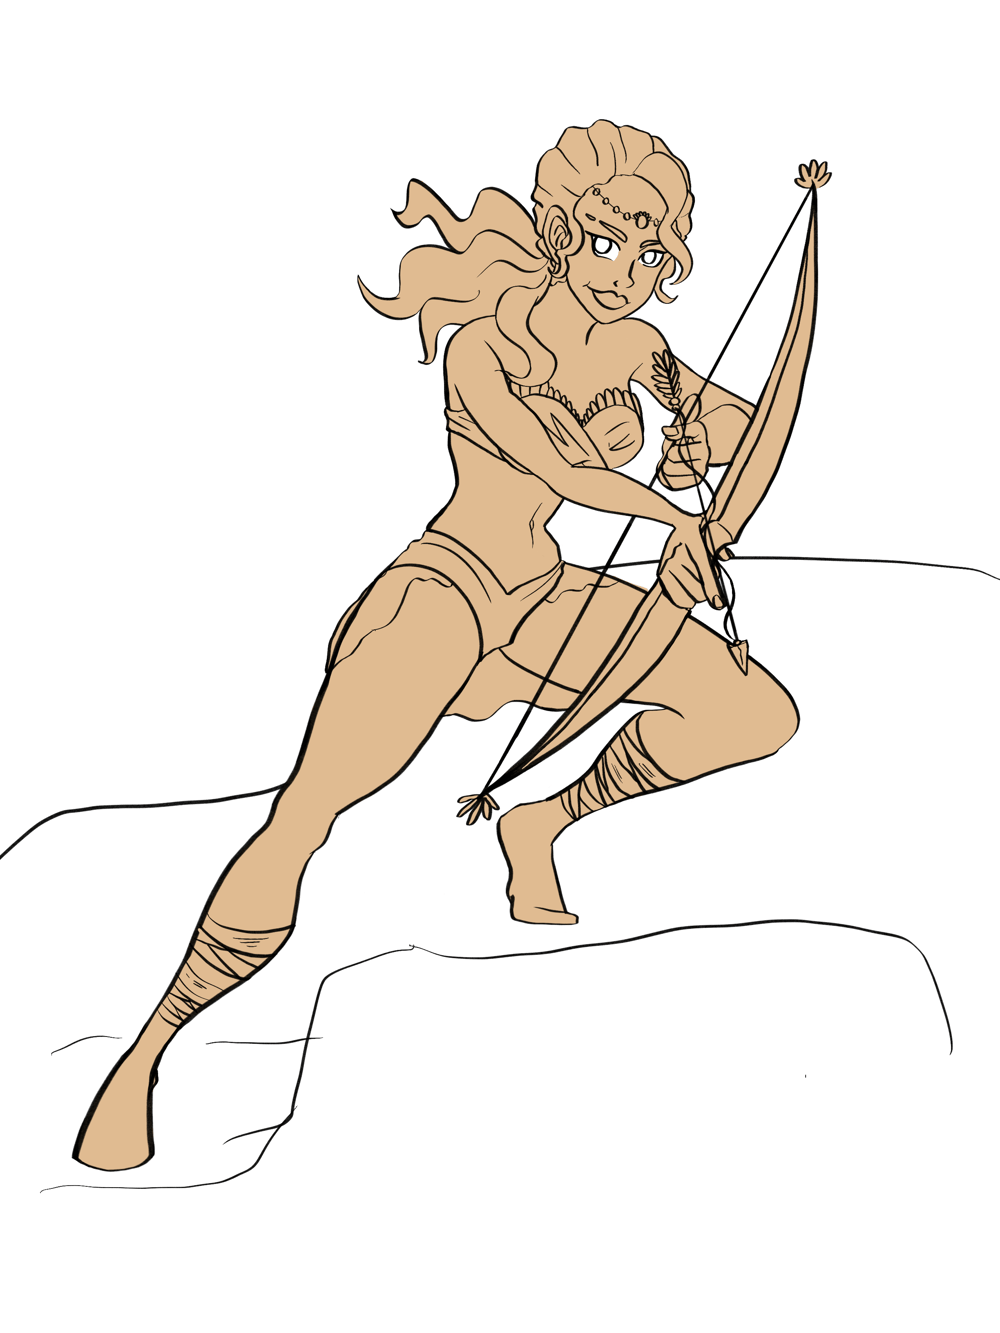 Character illustration Archer - image 2 - student project